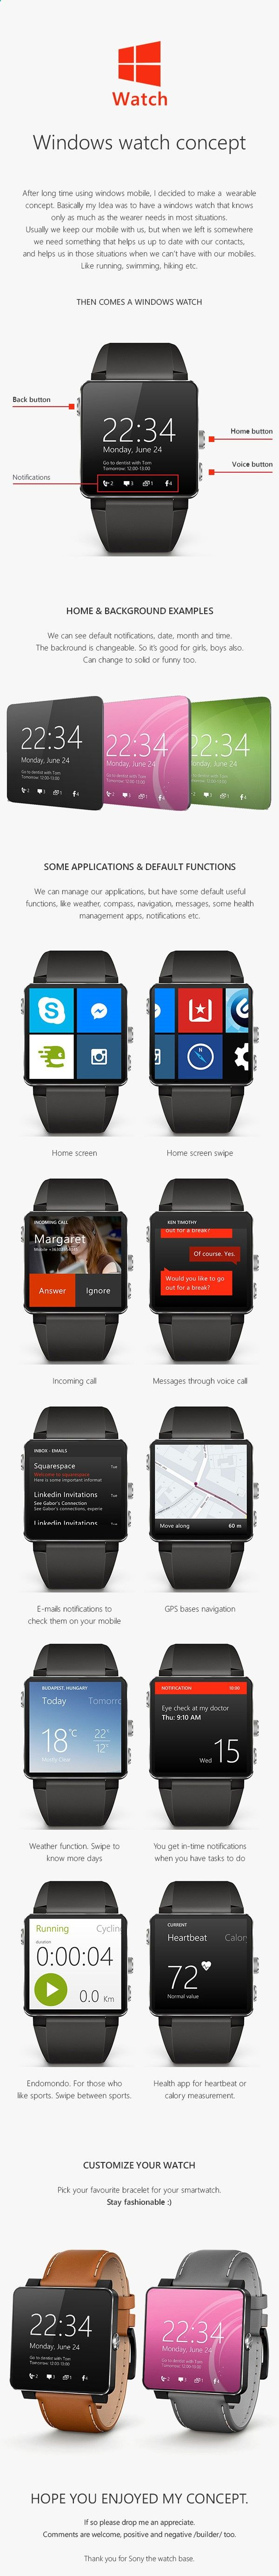 Tips For Choosing Smartwatch Microsoft Smartwatch Concept Designs - If you want to buy a smartwatch and you do not know which one, you need to review well not only the prices, but also which one is right for you. To do this, we give you useful tips to make the best choice.